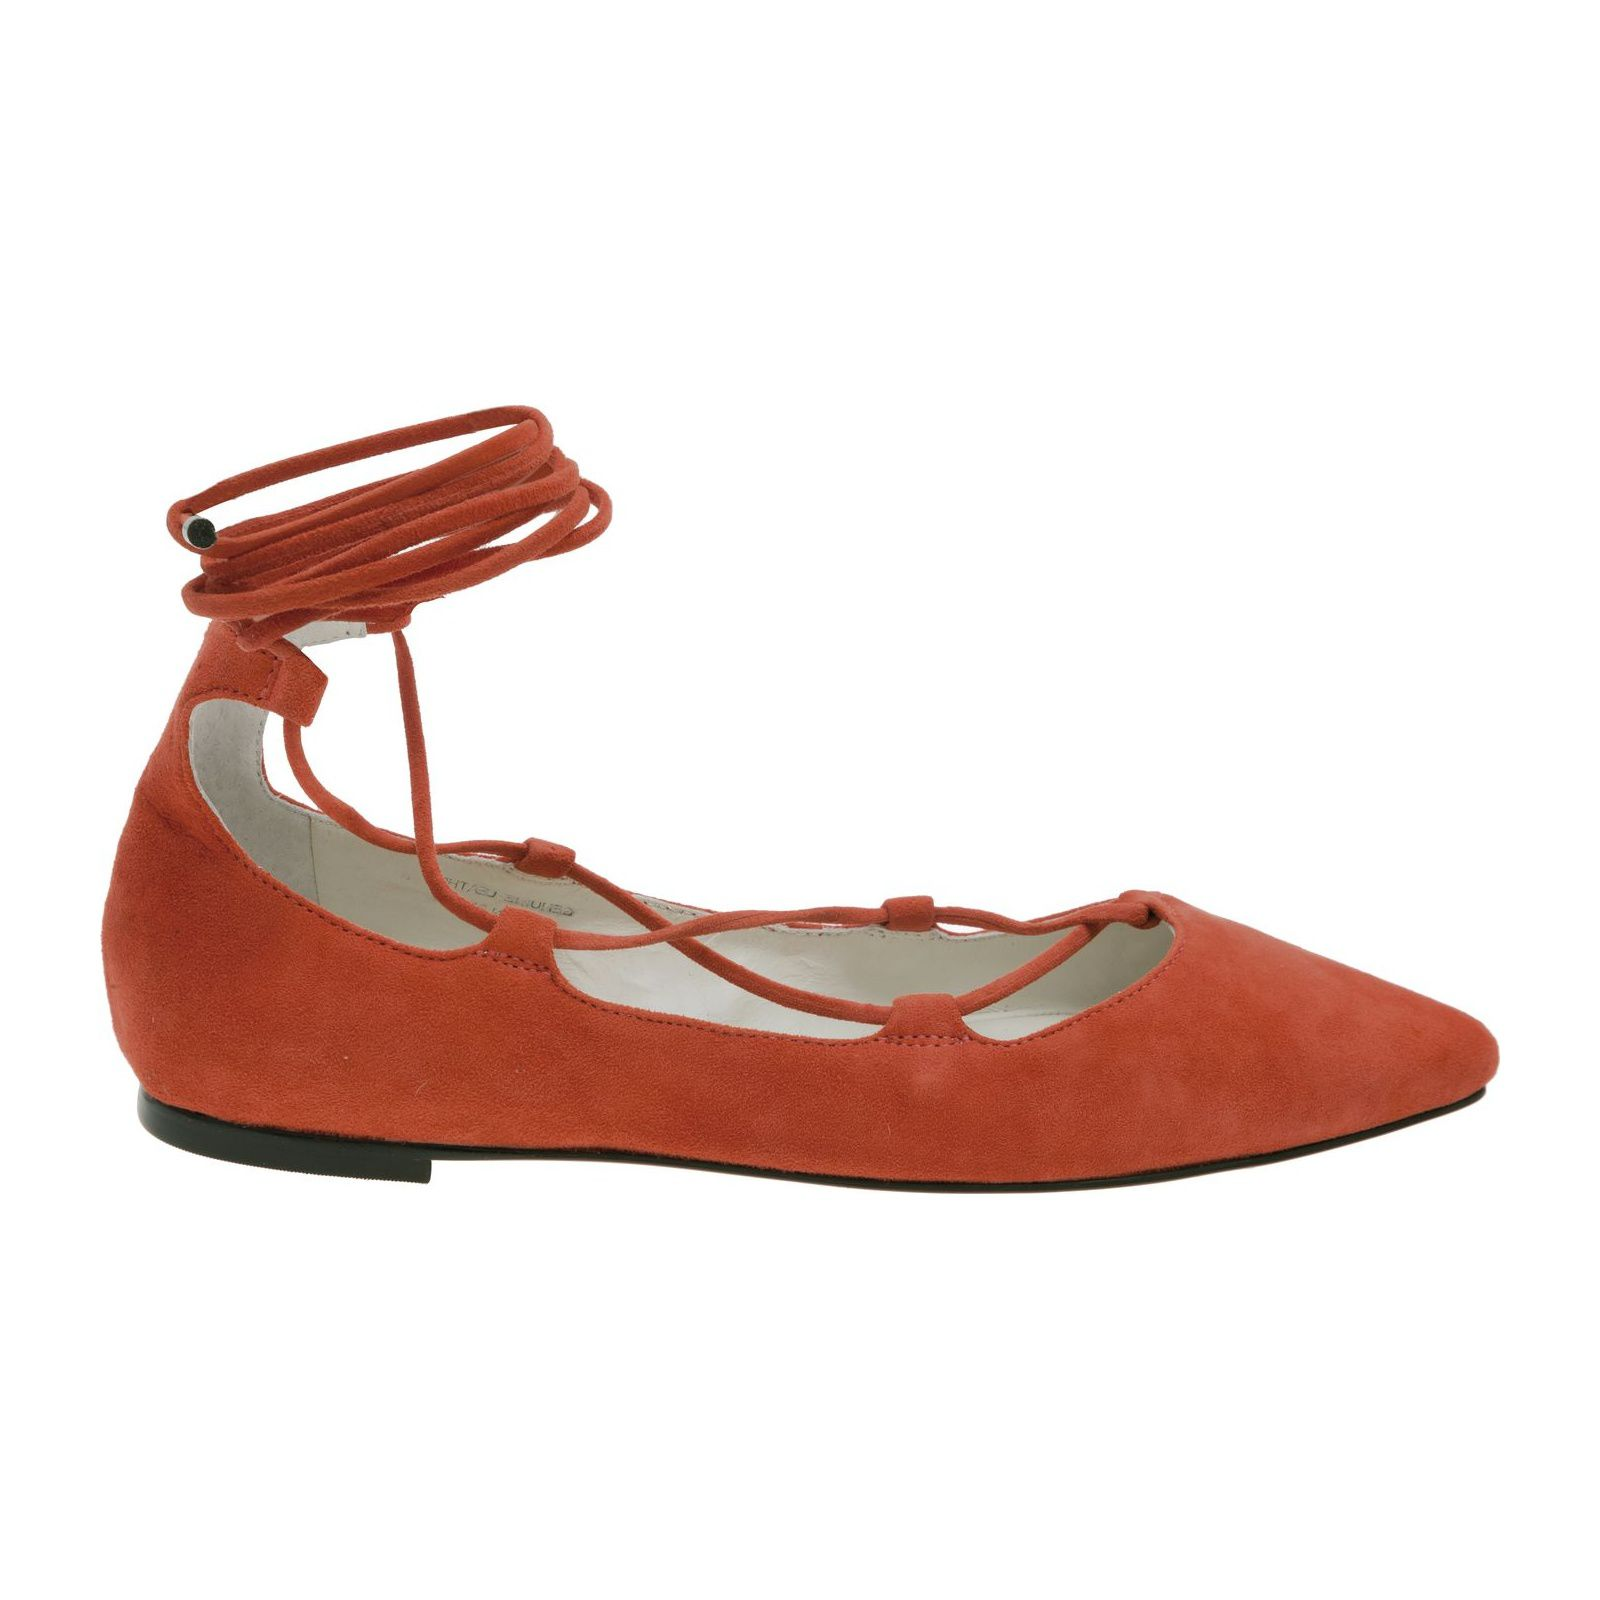 Sapatilha Lace Up Suede Vinci Shoes - Laranja